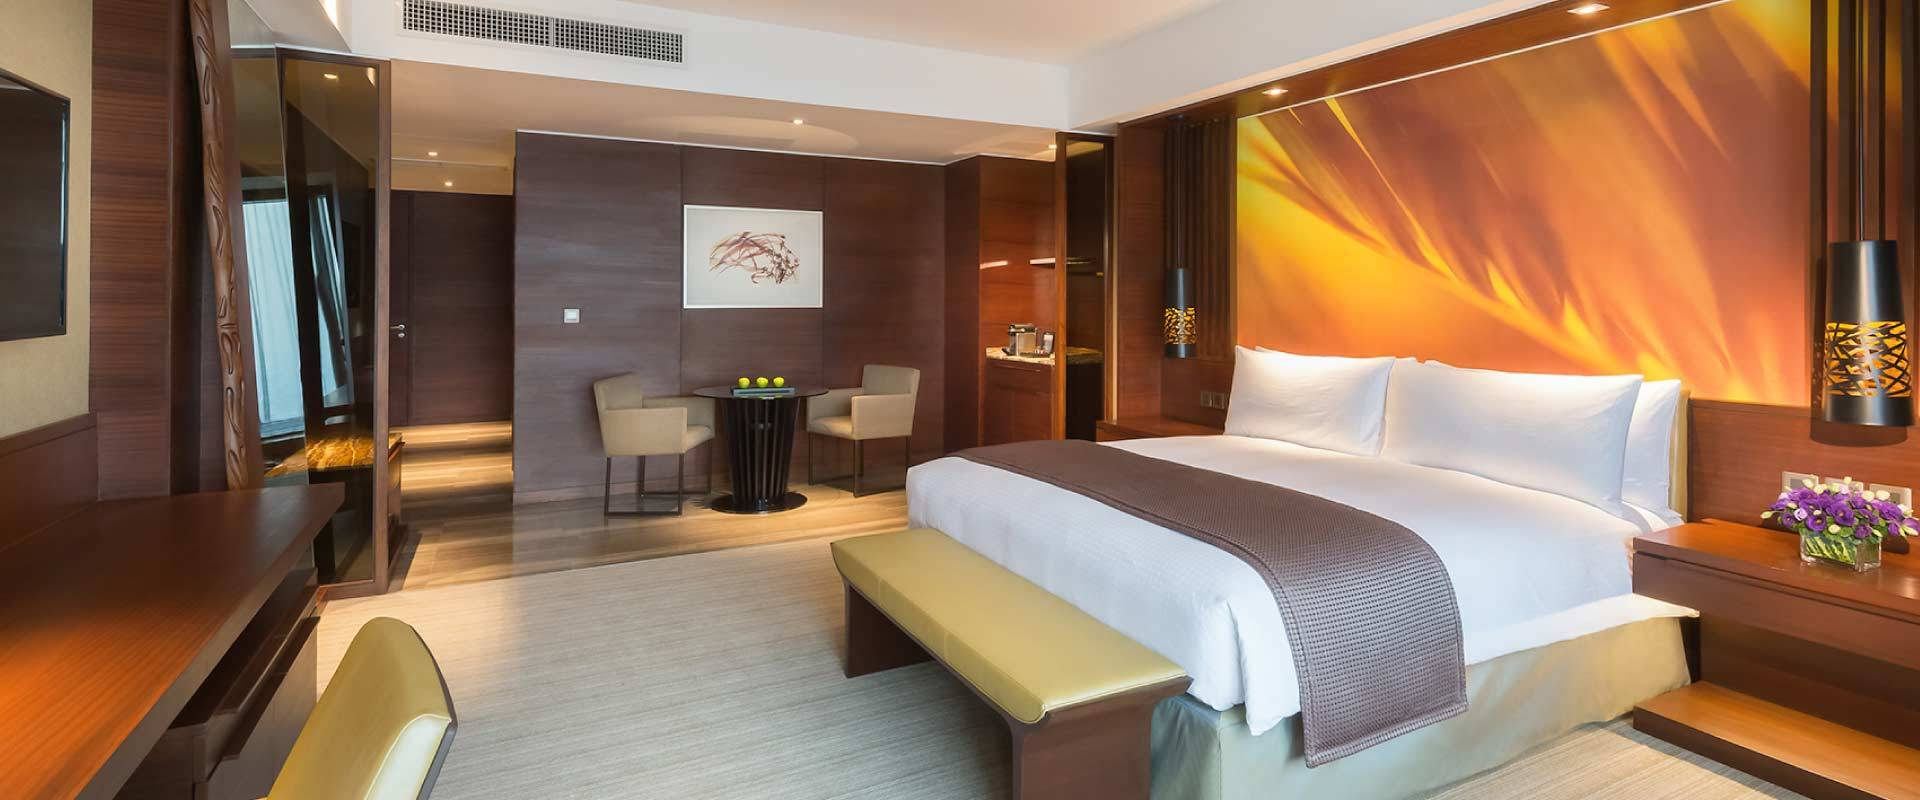 Rooms suites marco polo ortigas manila for Modern hotel